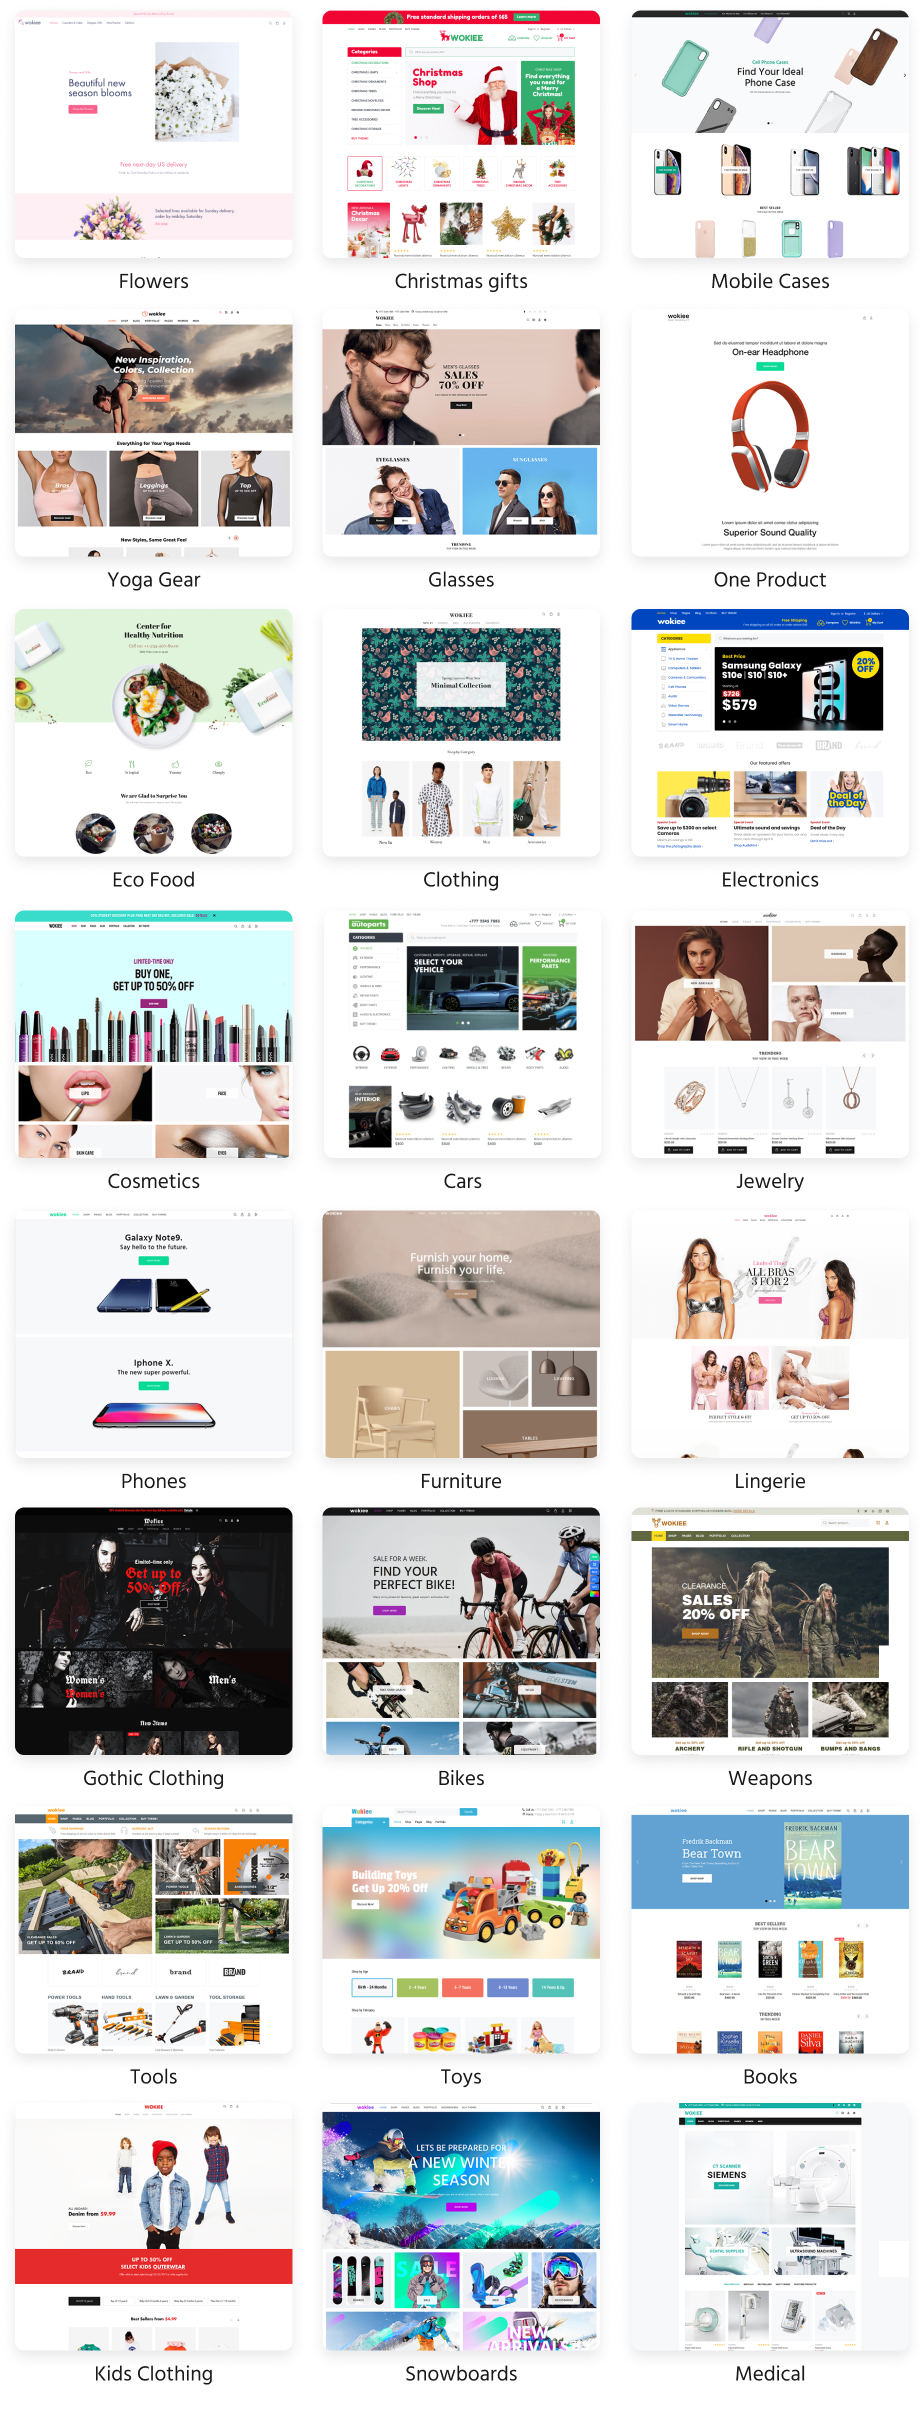 Wokiee - Multipurpose Shopify Theme - 22